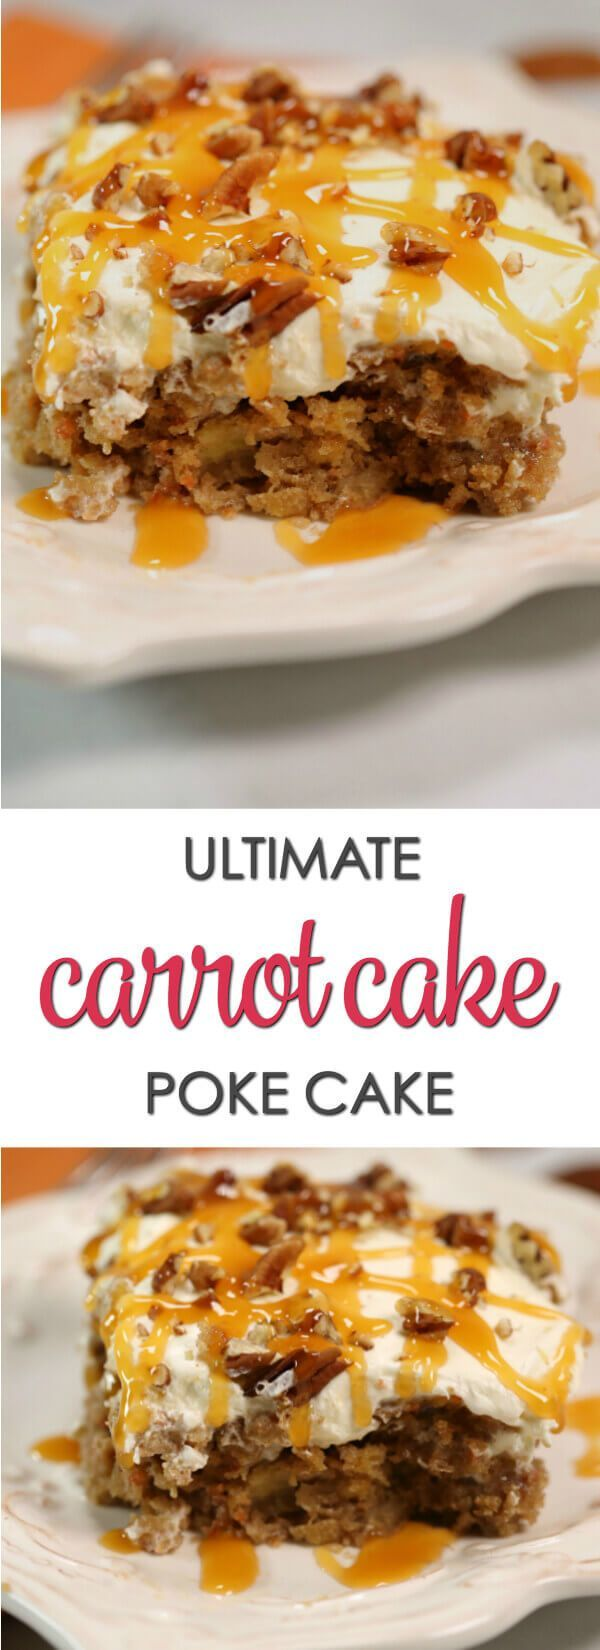 This Ultimate Carrot Cake Poke Cake is one of my favorite easy poke cake recipes. It's decadent, delicious and very easy to make. Ultimate Carrot Cake Poke Cake is one of my favorite easy poke cake recipes. It's decadent, delicious and very easy to make.